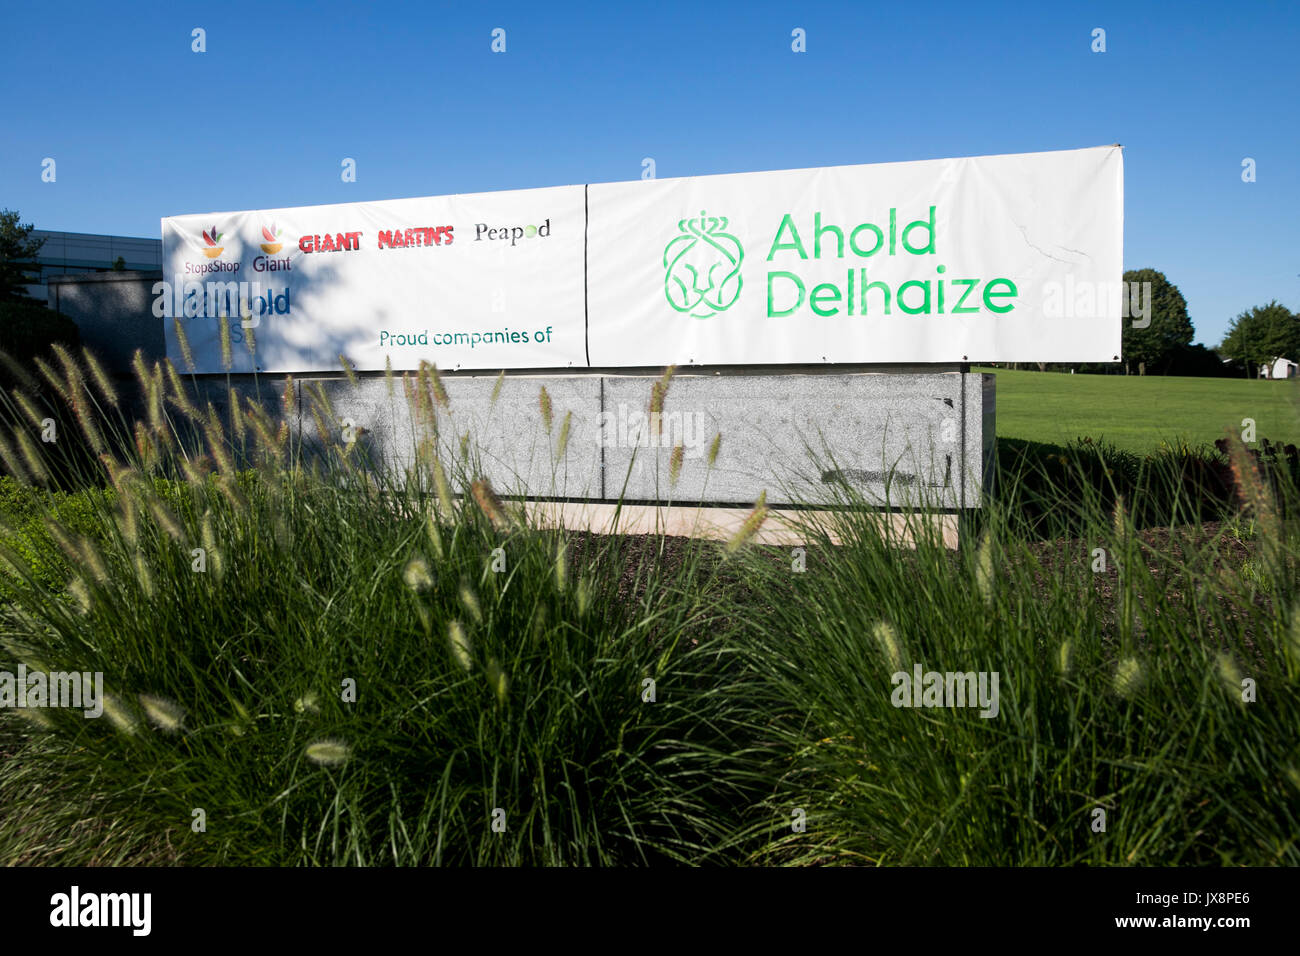 Ahold Delhaize Stock Photos & Ahold Delhaize Stock Images